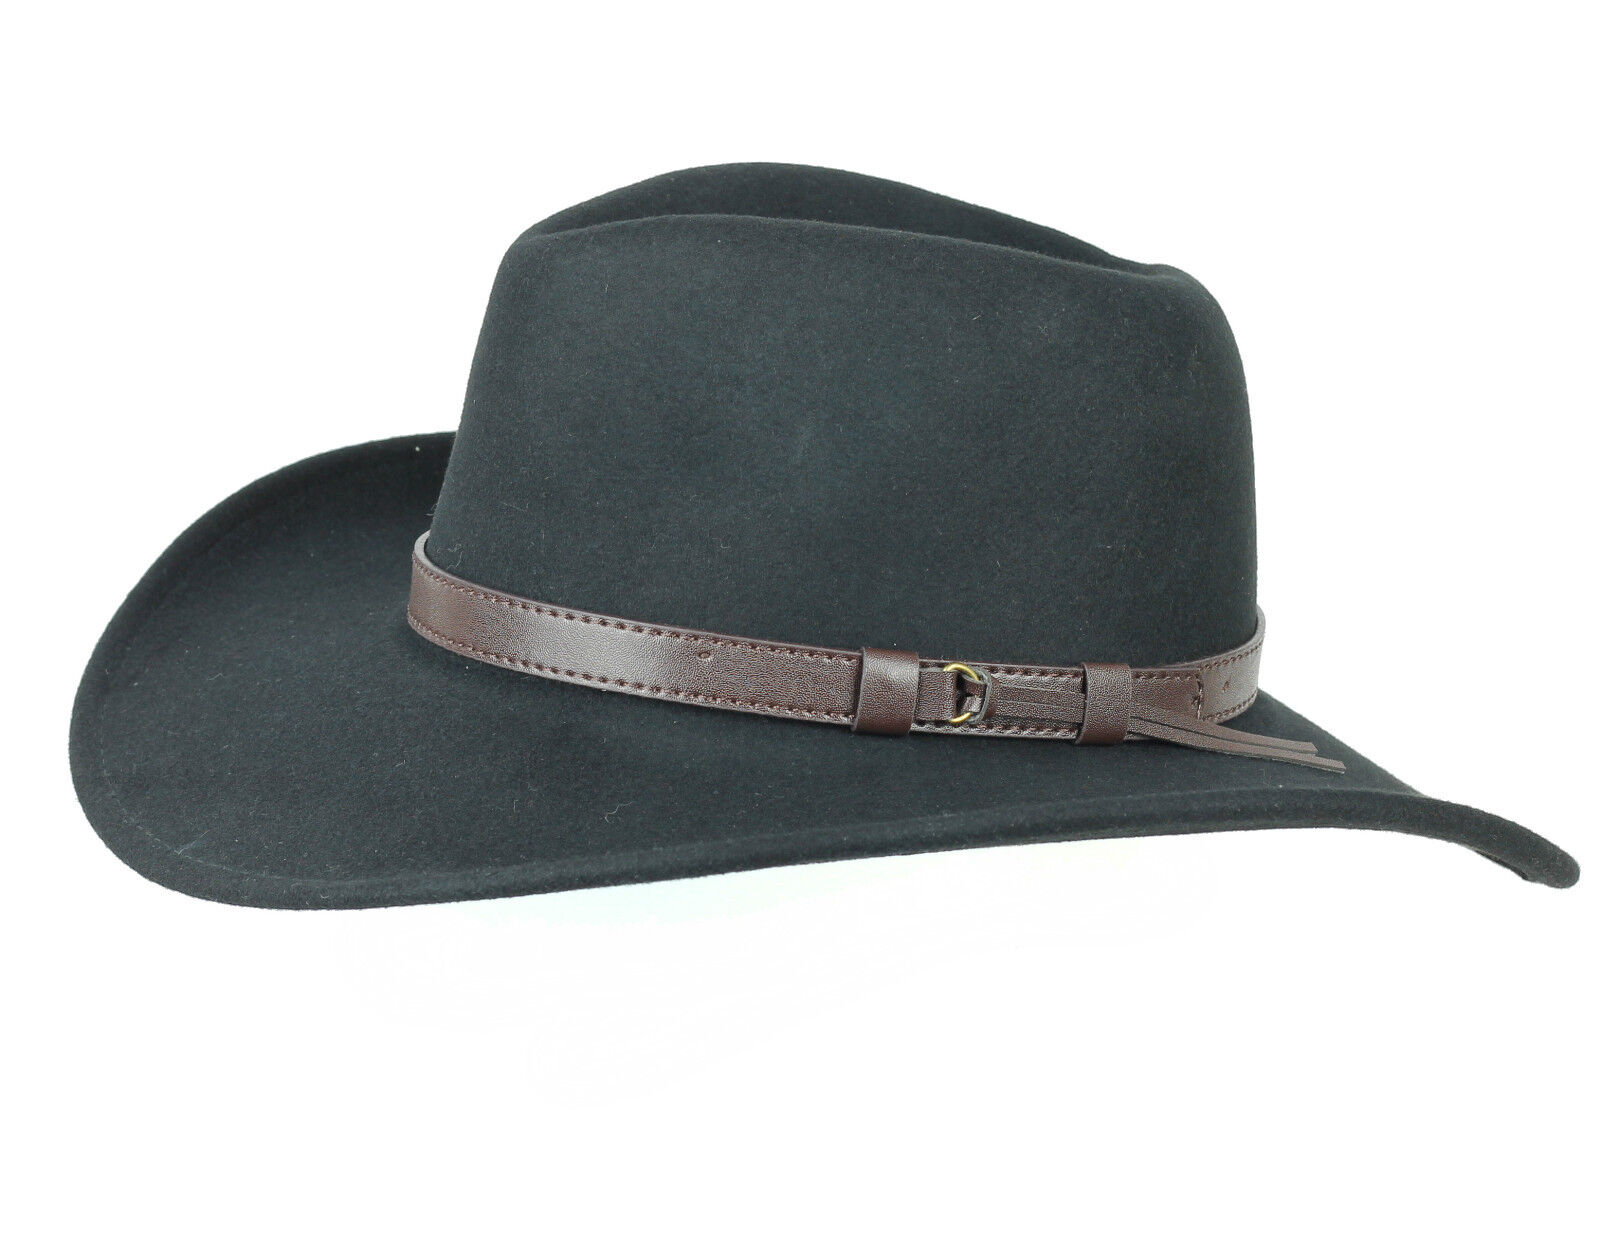 58023bfb2e0 Unisex Mens Women Vintage Luxury 100% Wool Big Brim Cow Boy Fedora Hat 4  Sizes